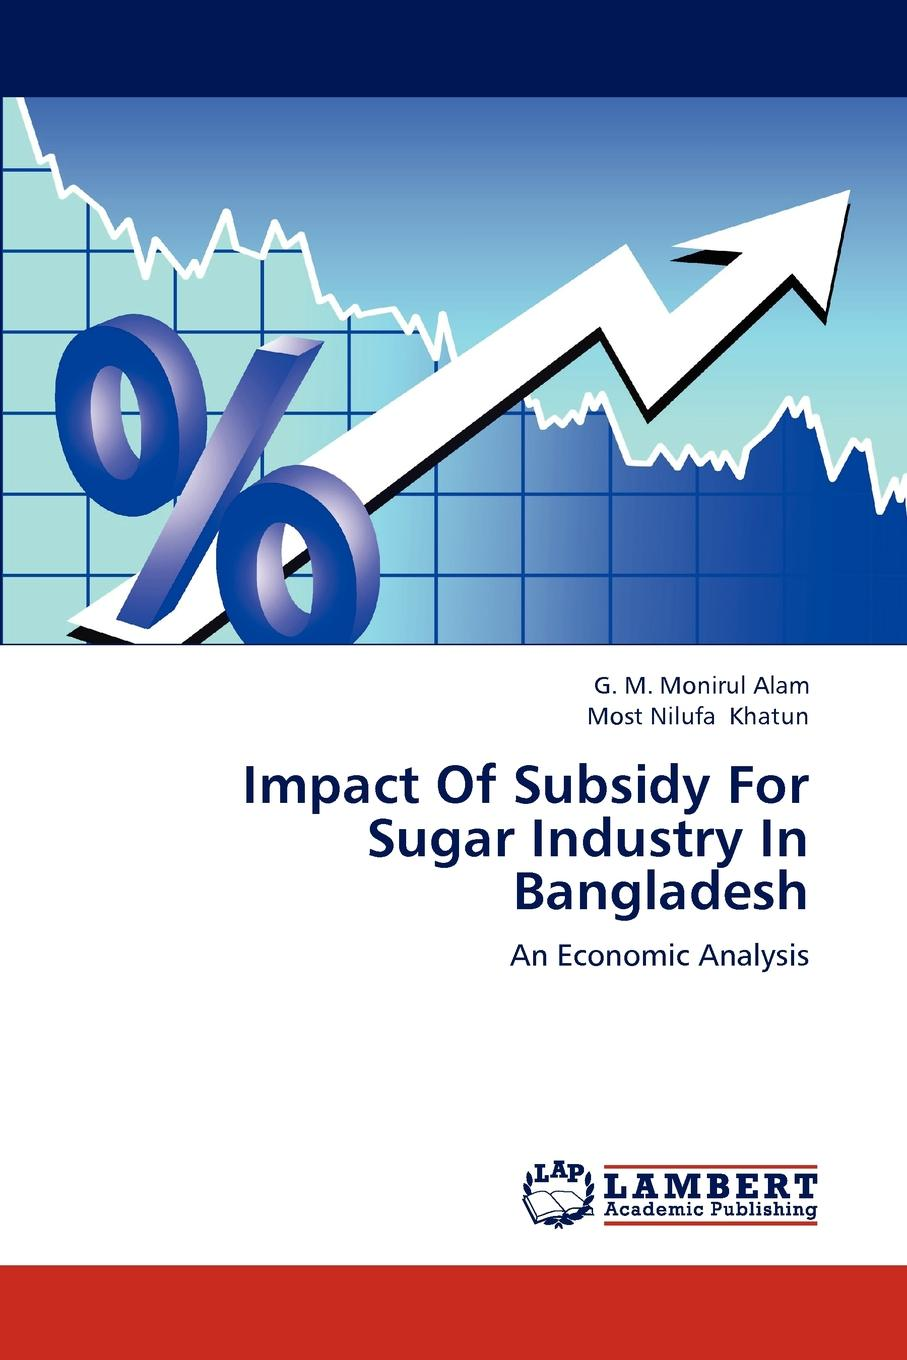 G. M. Monirul Alam, Most Nilufa Khatun Impact of Subsidy for Sugar Industry in Bangladesh sachin kumar sharma rationalisation of input subsidy in india under trade liberalisation